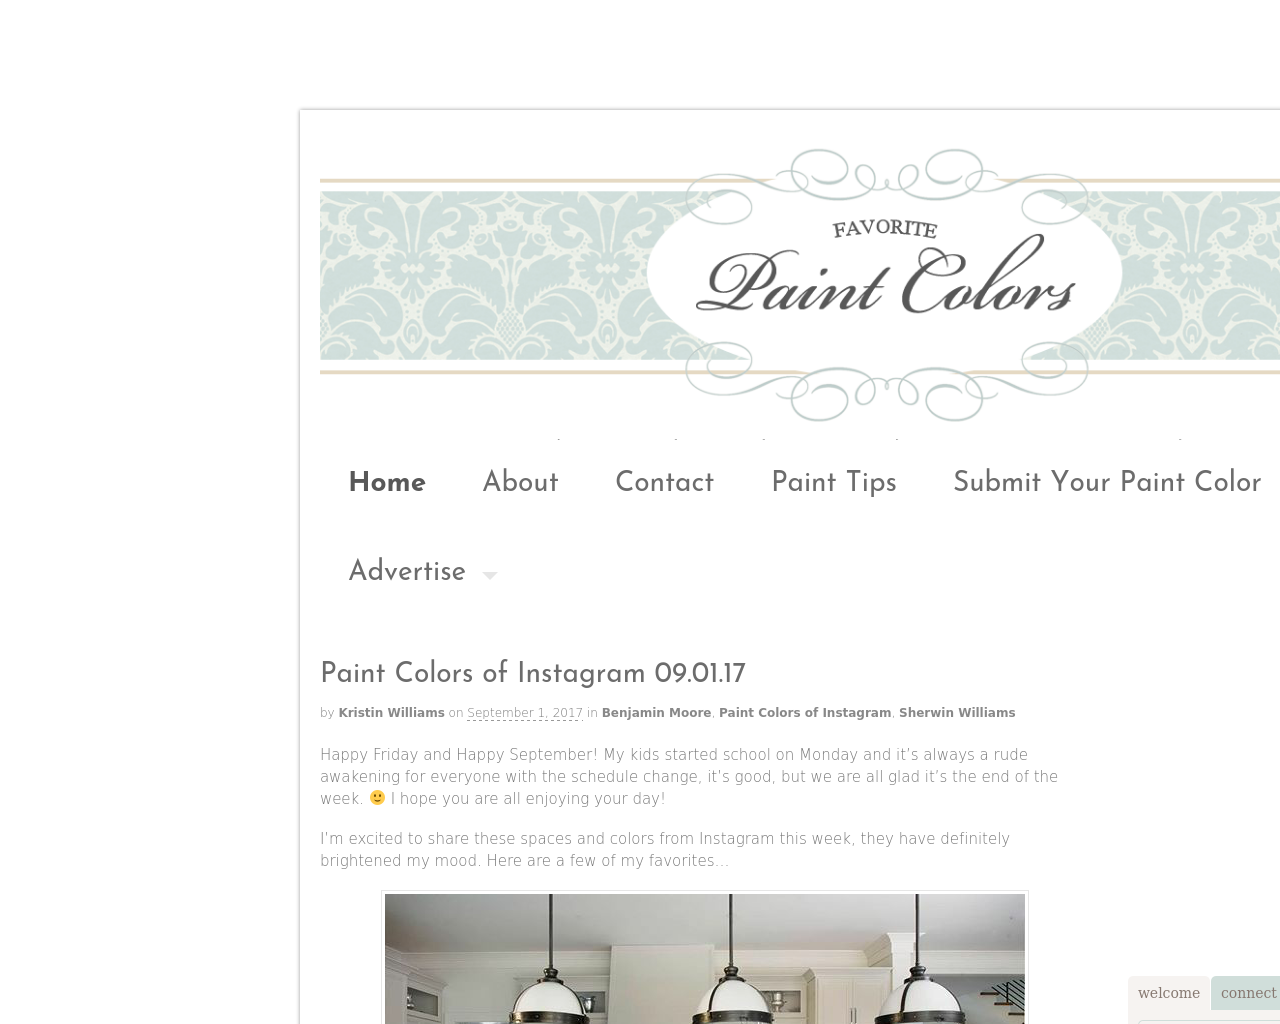 Favorite-Paint-Colors-Blog-Advertising-Reviews-Pricing